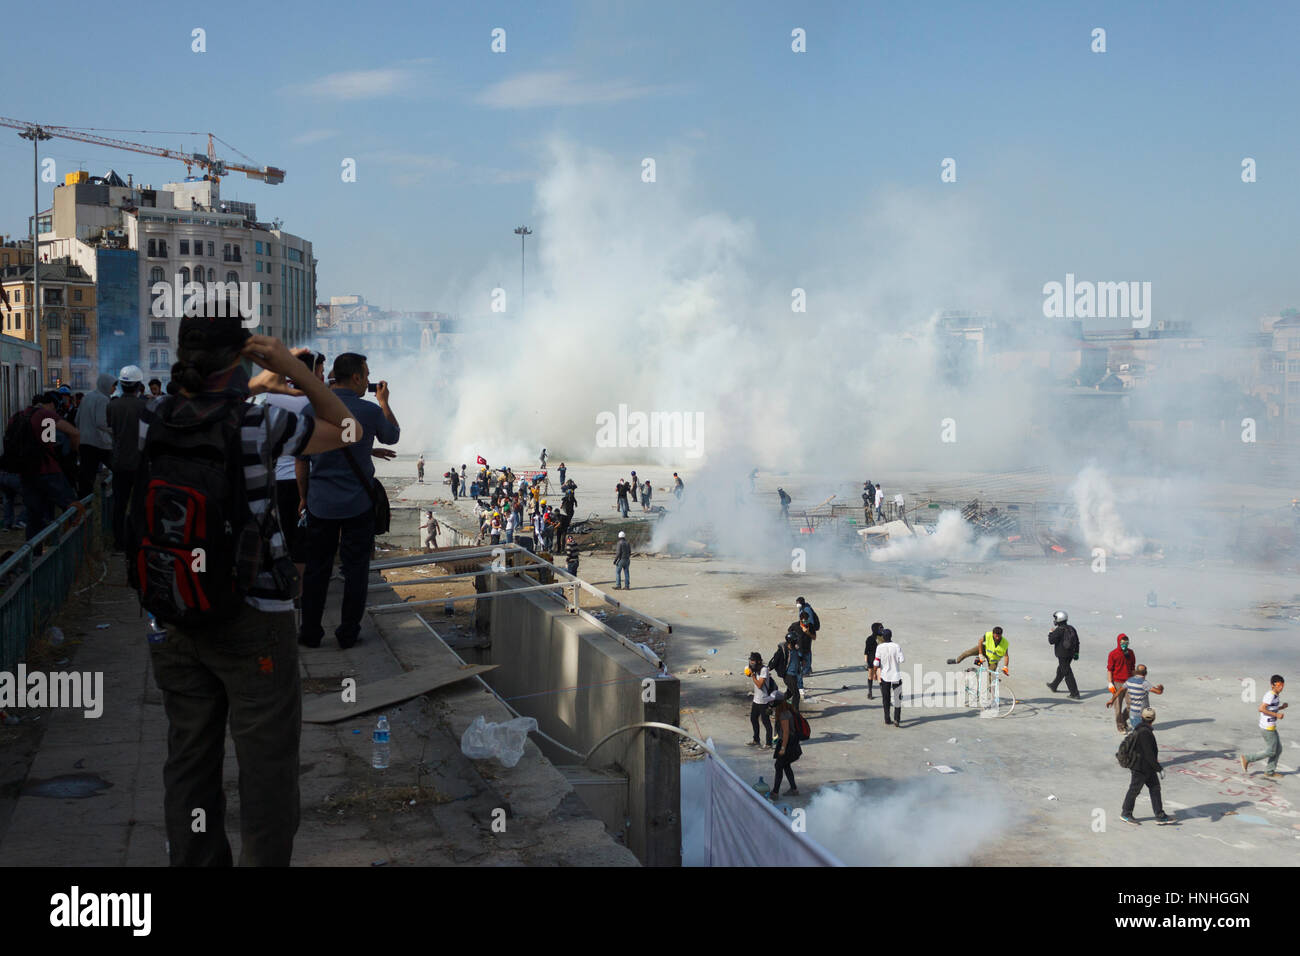 ISTANBUL - JUNE 10 2013 : People are at Taksim Square to protest against Taksim Gezi Park demolition in Istanbul, - Stock Image